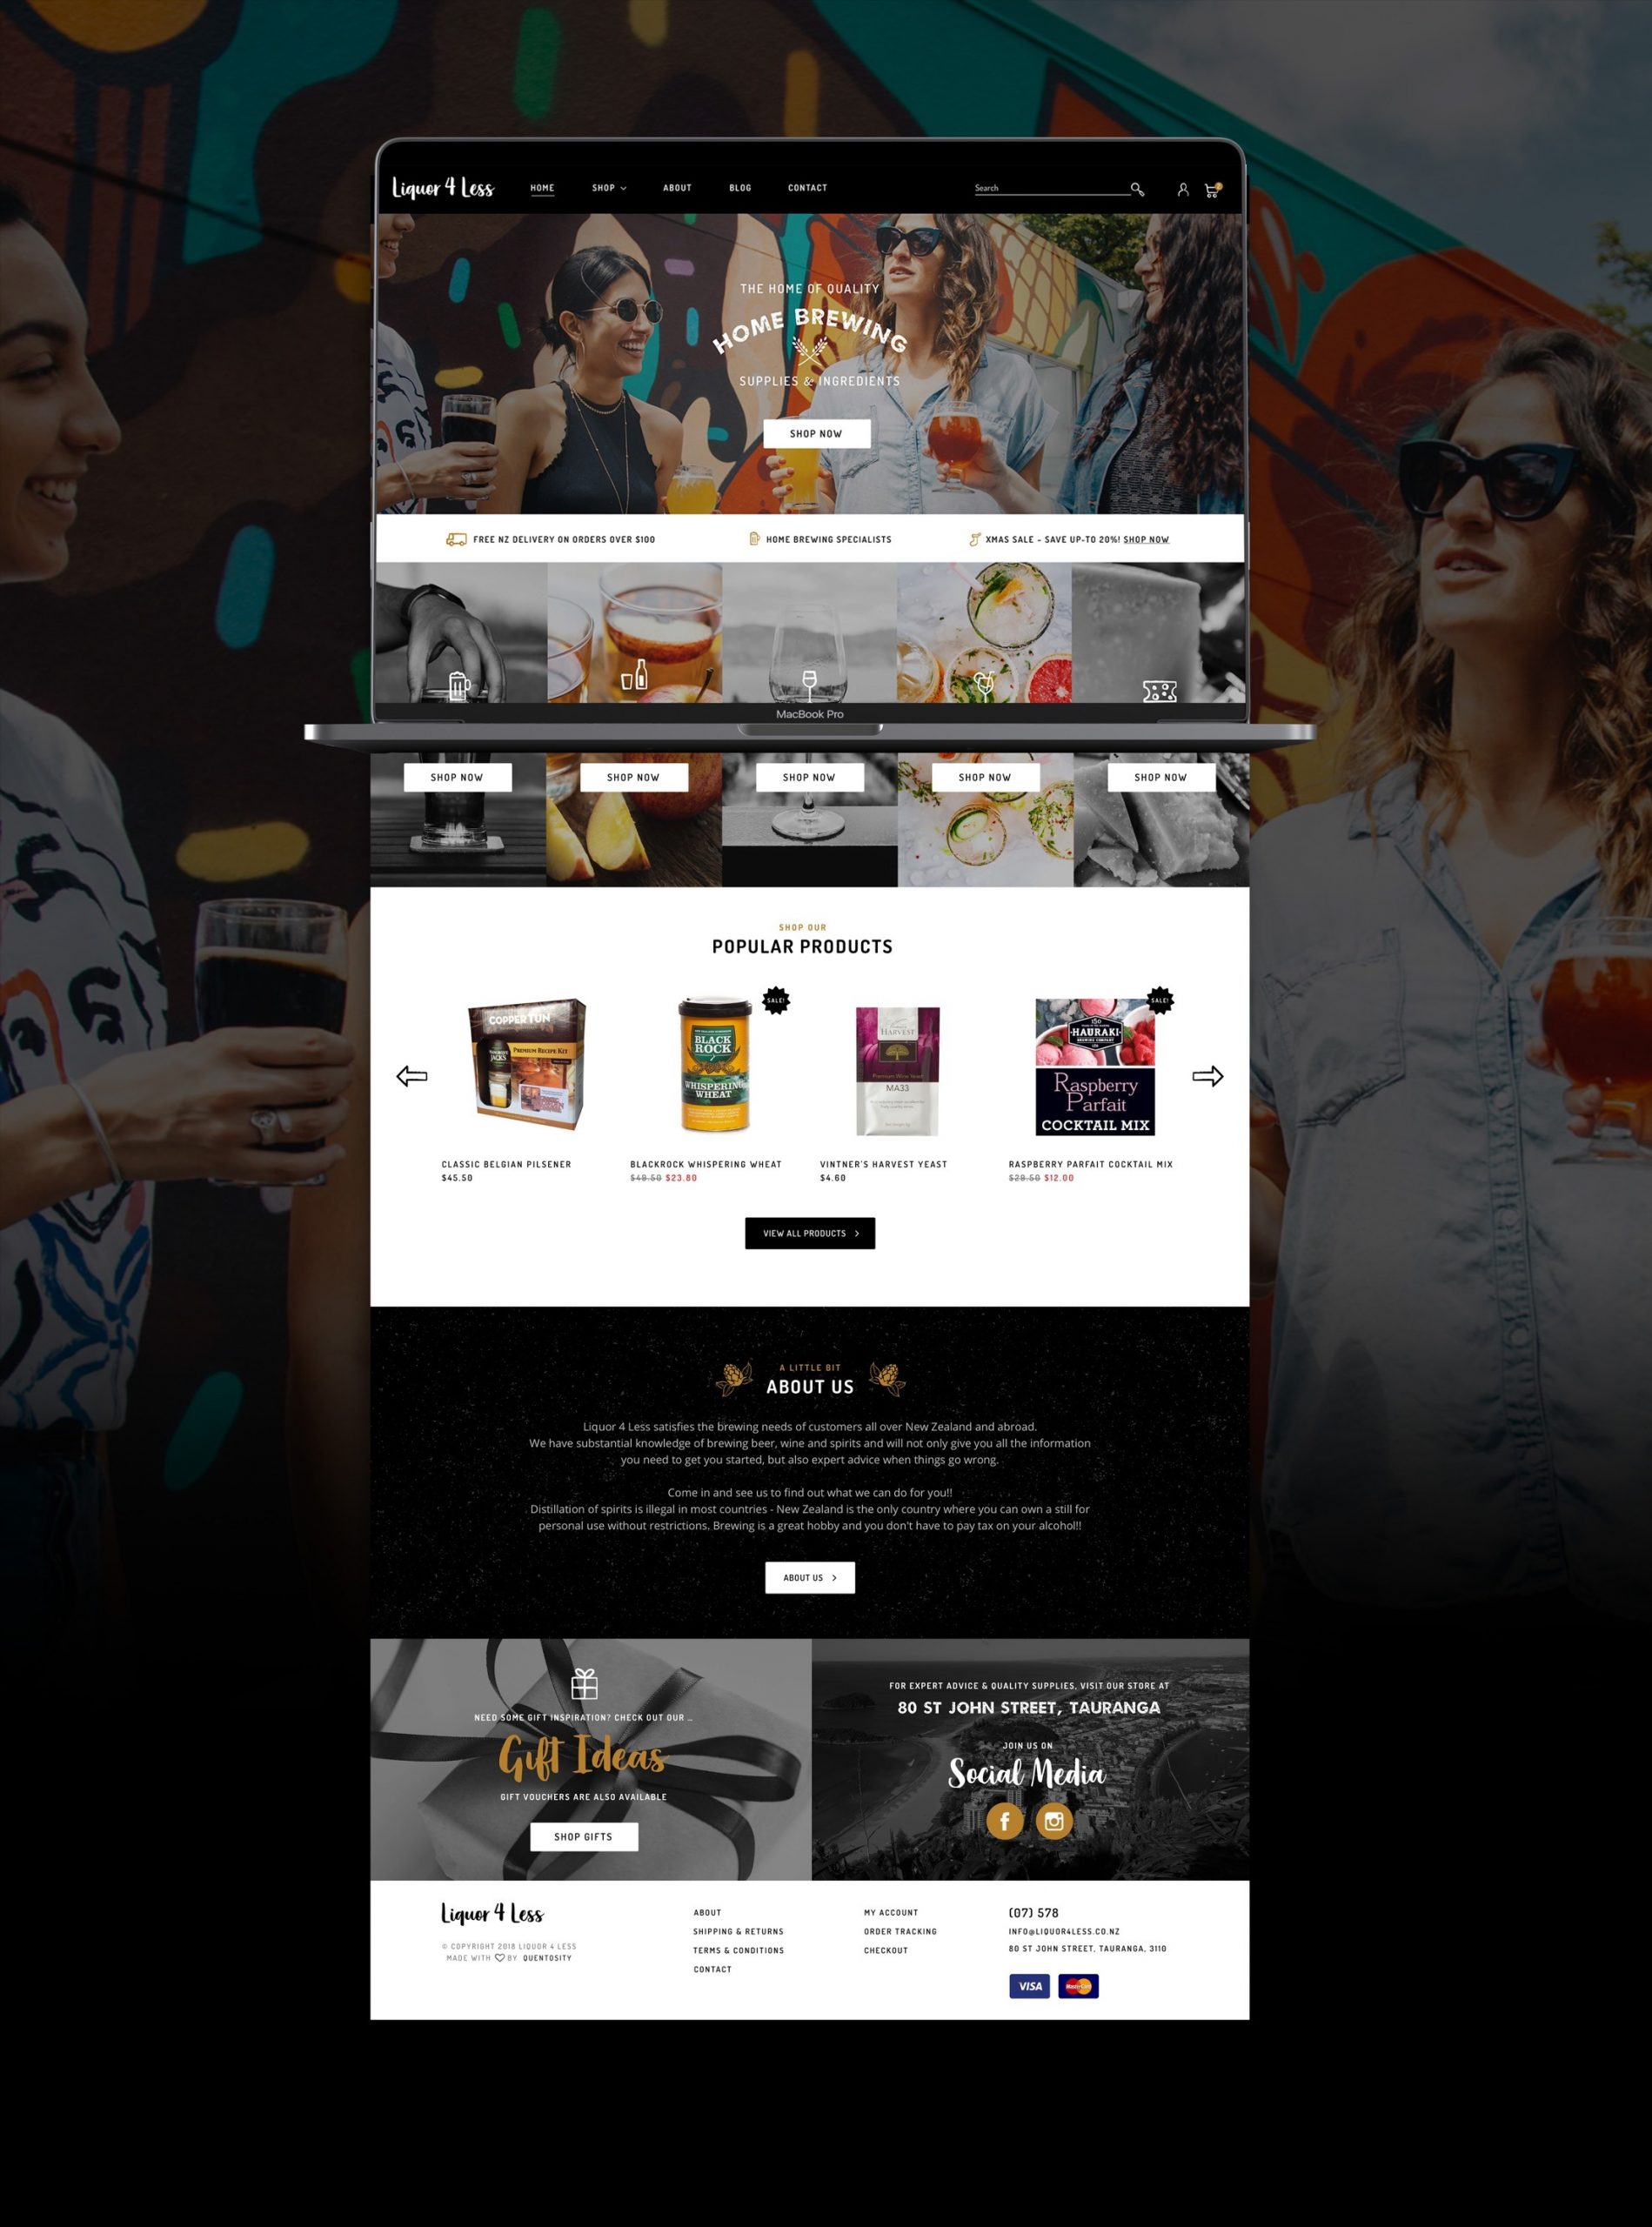 Website Re-design - Liquor 4 Less